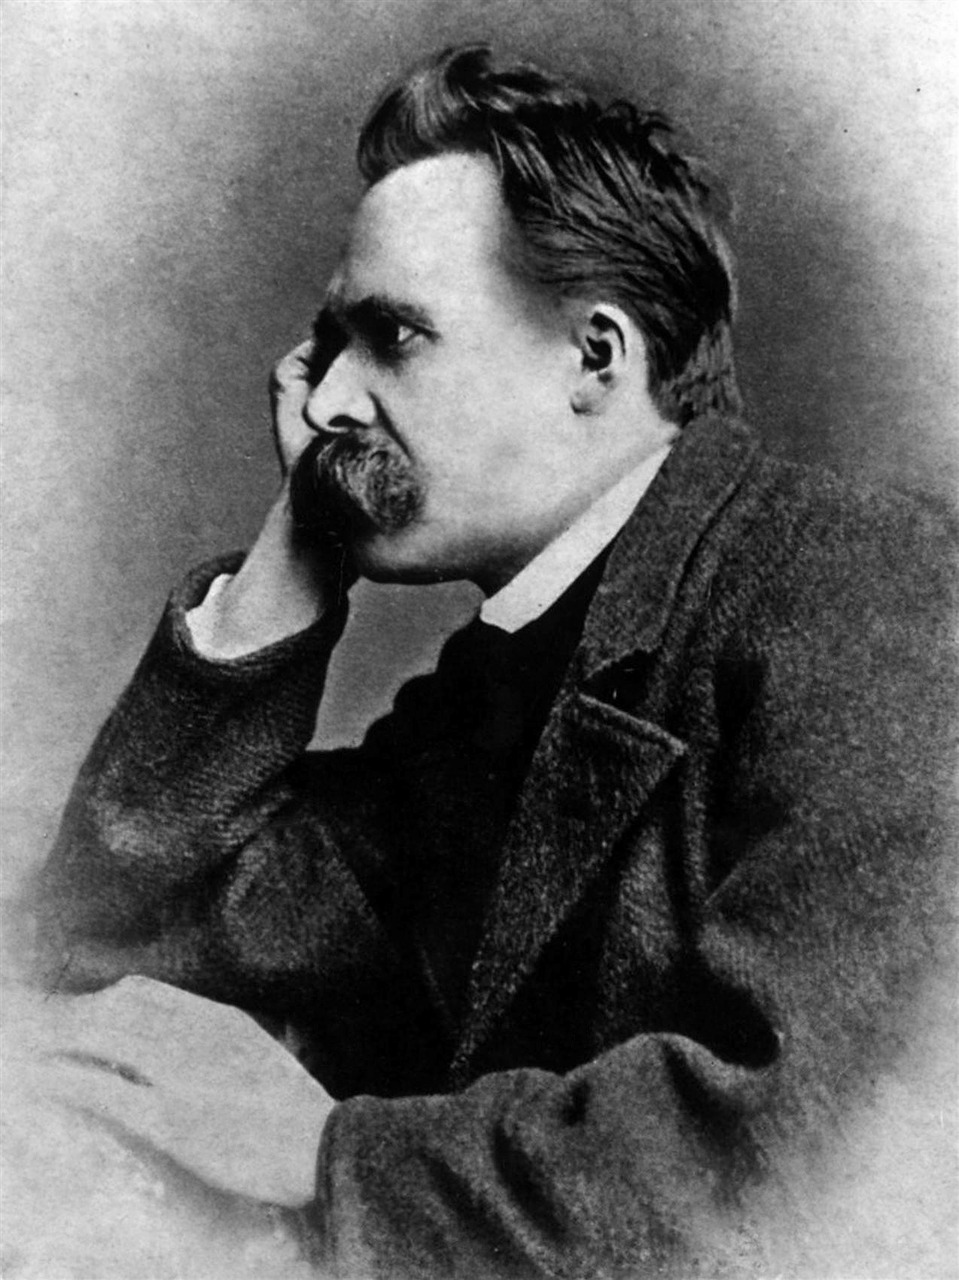 Friedrich Nietzsche Man Portrait - Free photo on Pixabay